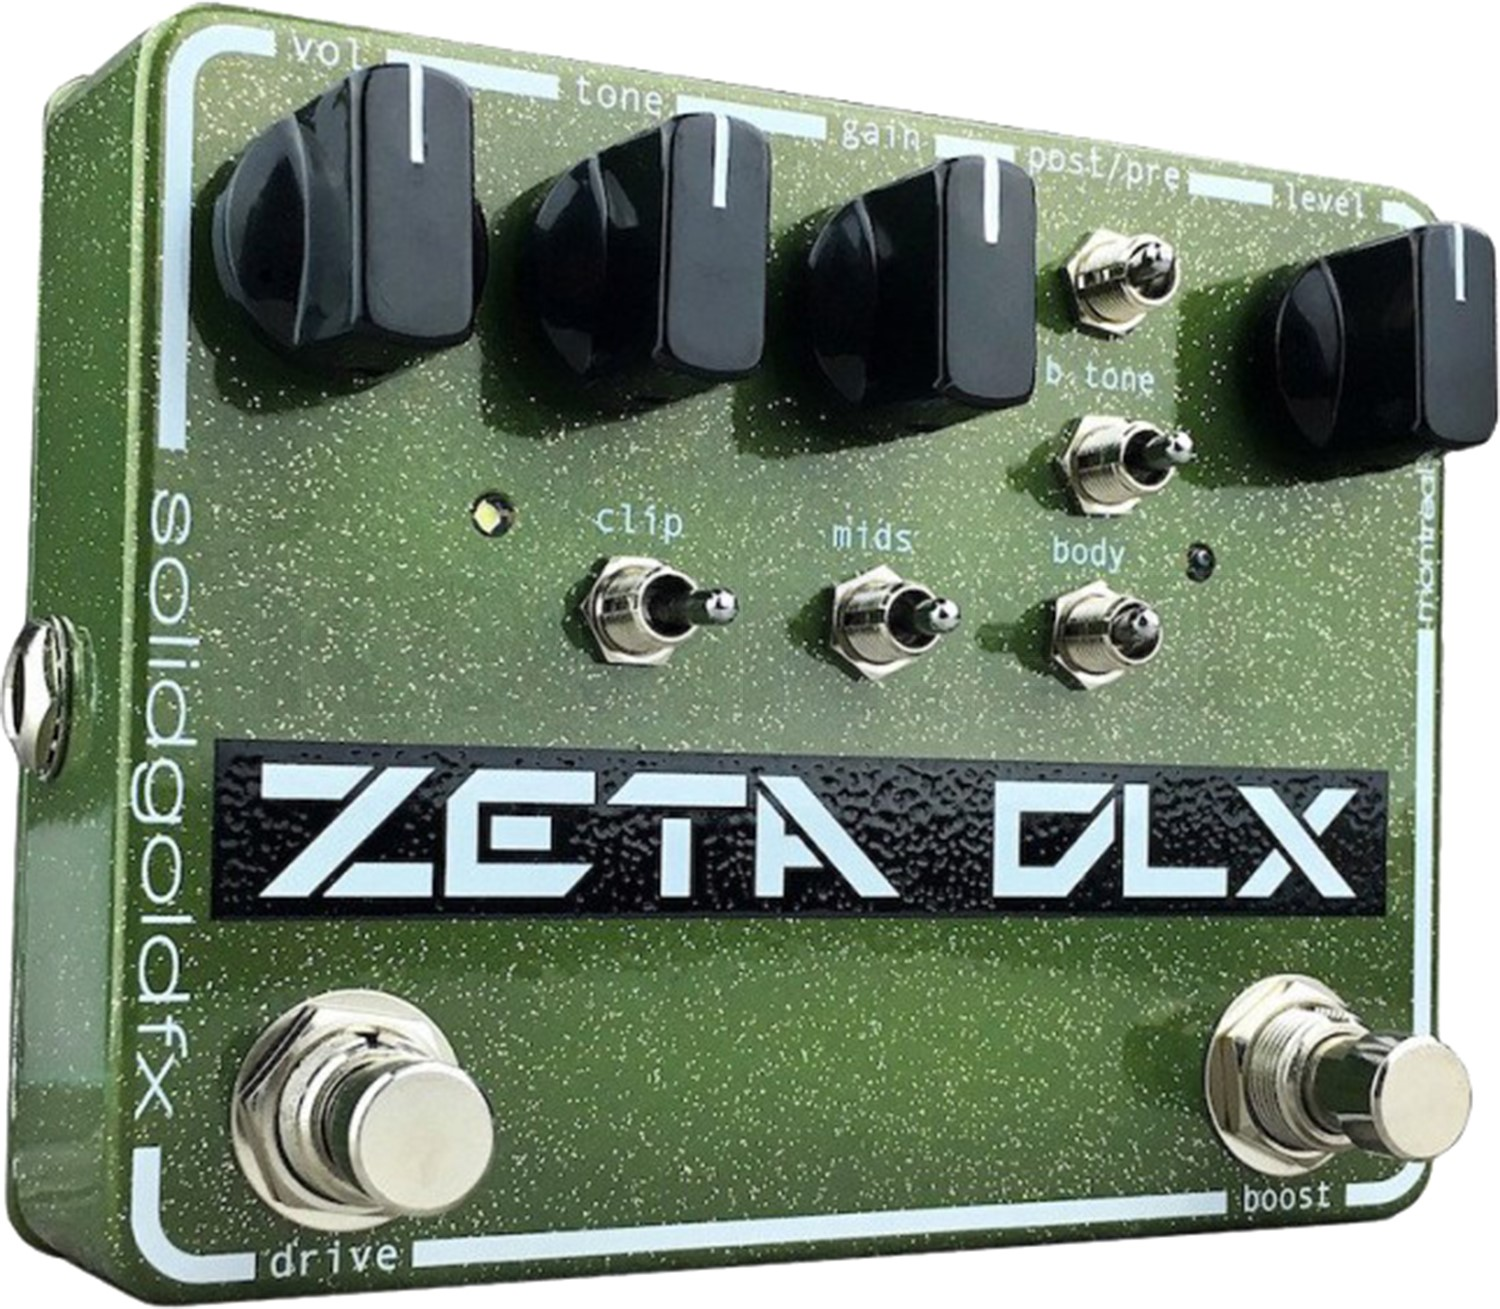 DEMODEAL   SolidGoldFX - Zeta DLX  - Deluxe Guitar Preamp / Overdrive / Boost